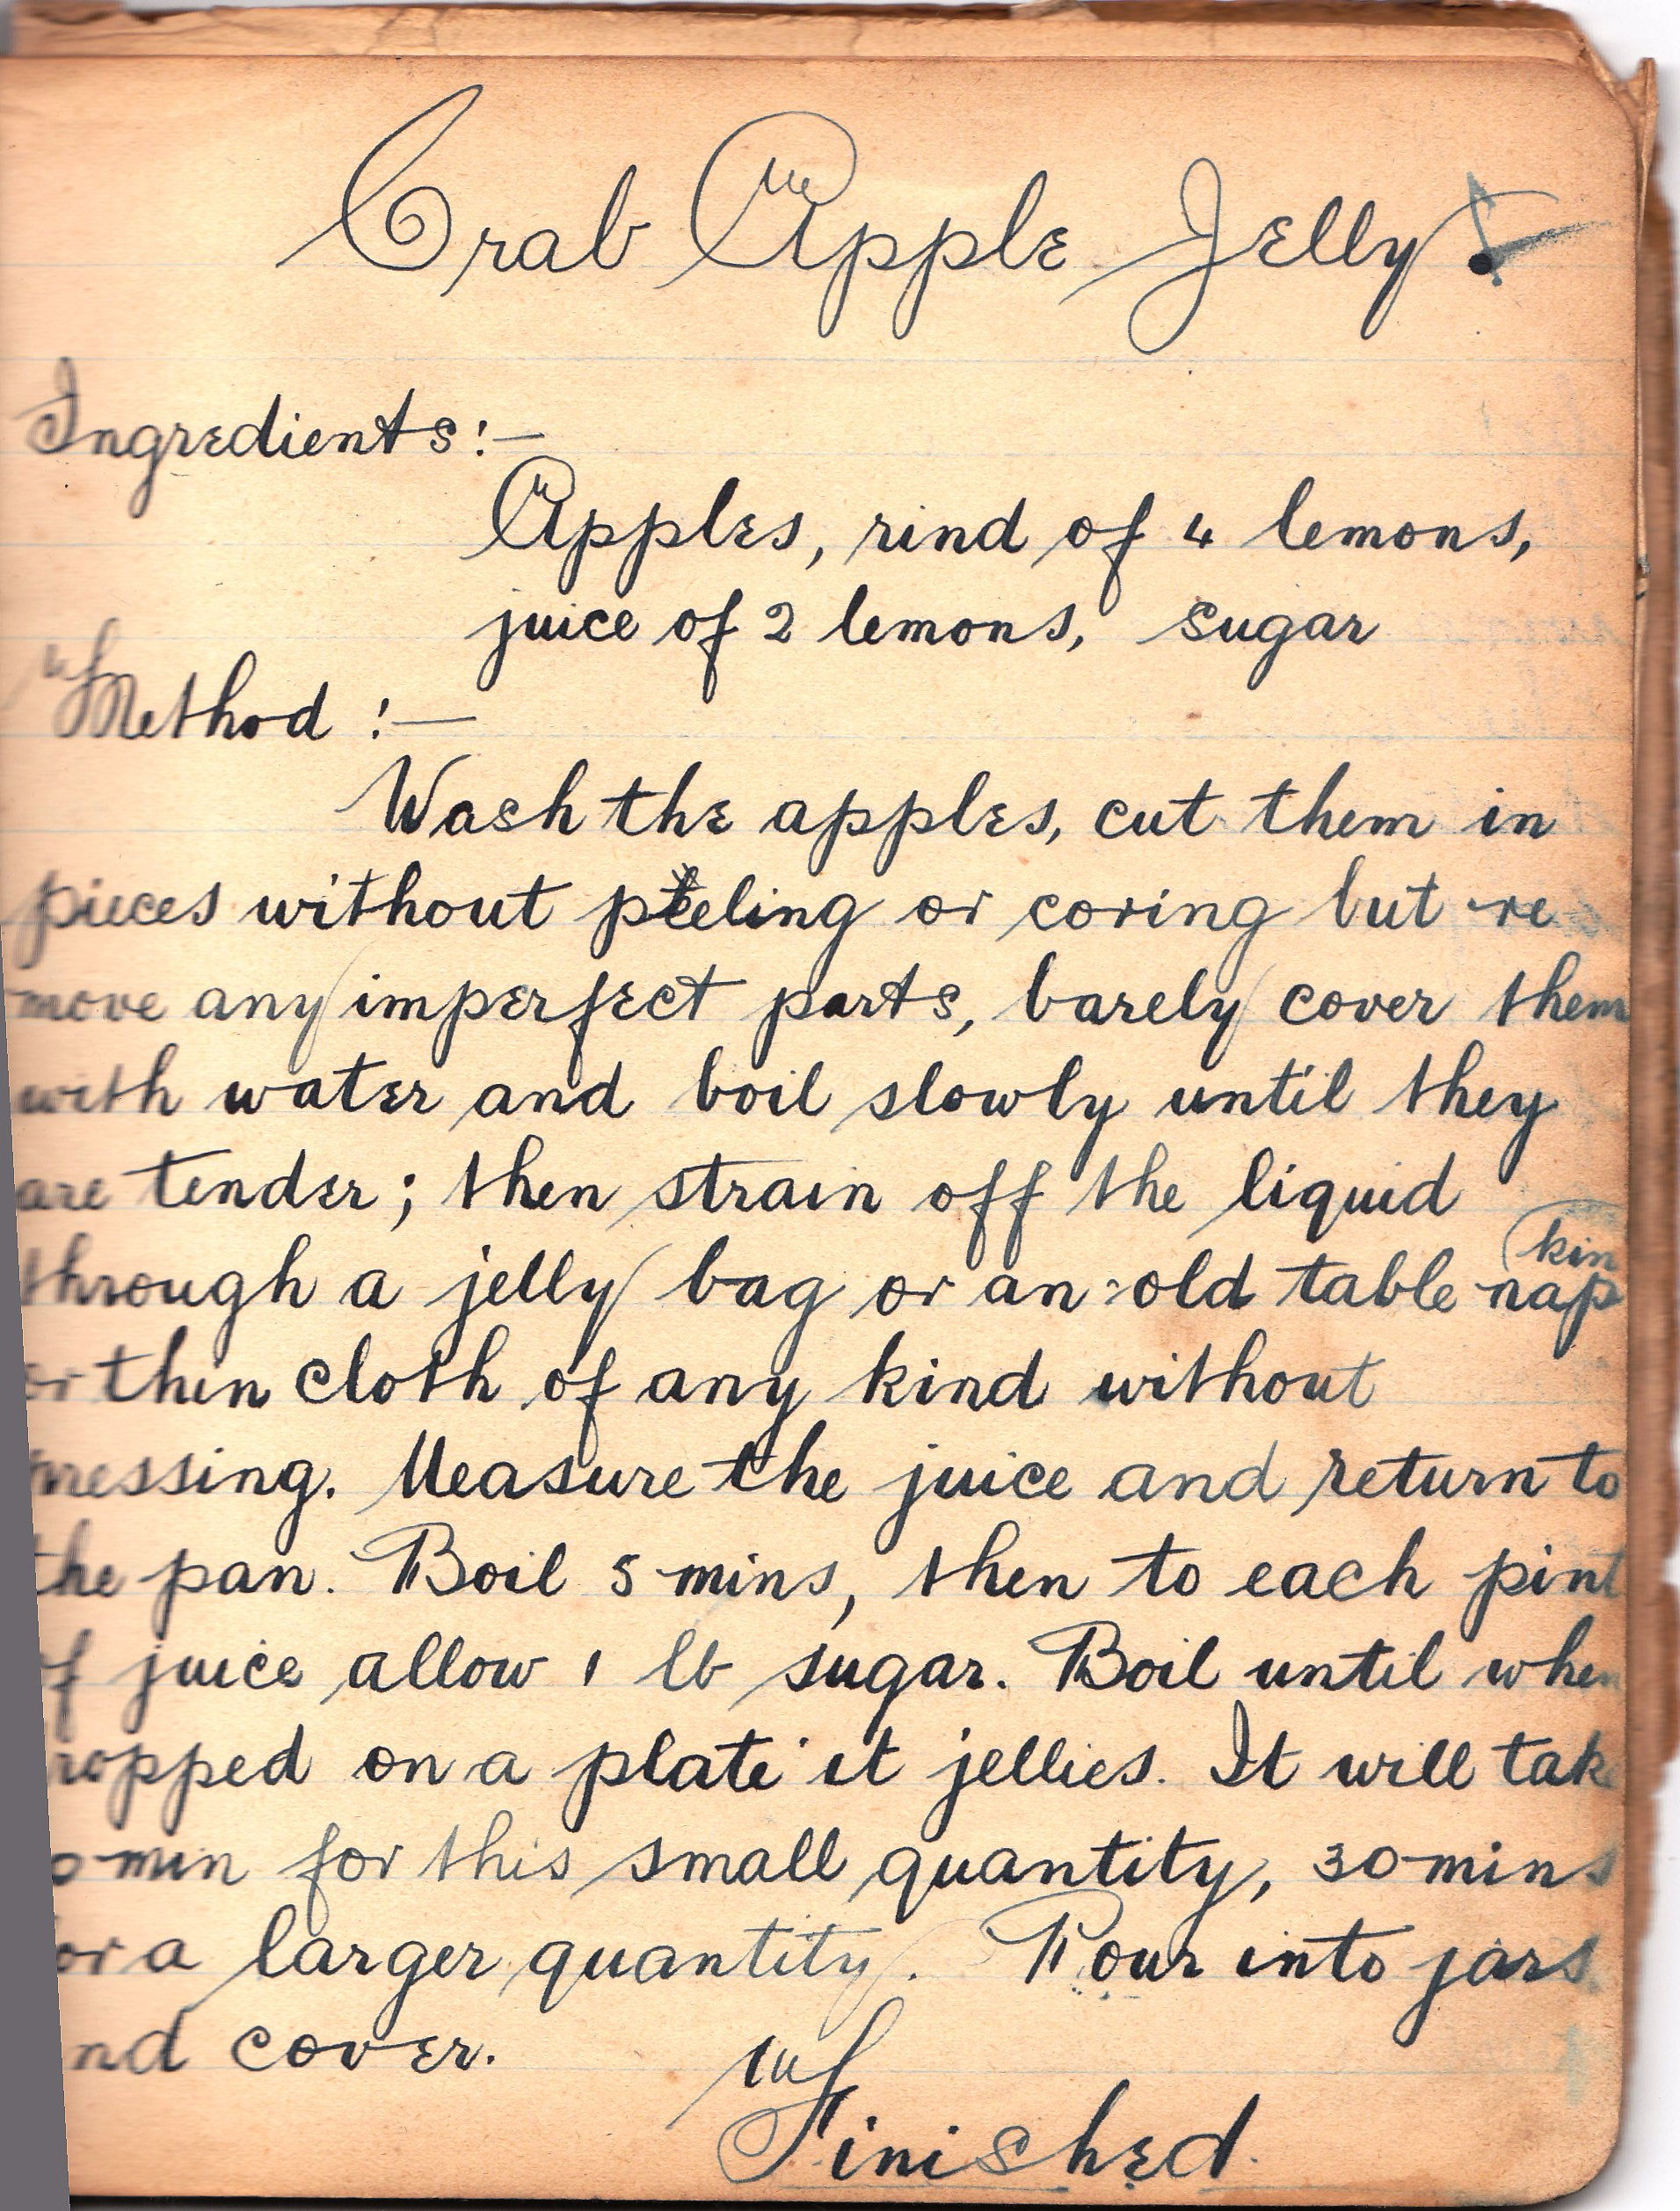 old recipe for crab apple jelly - Apple Jelly Recipes